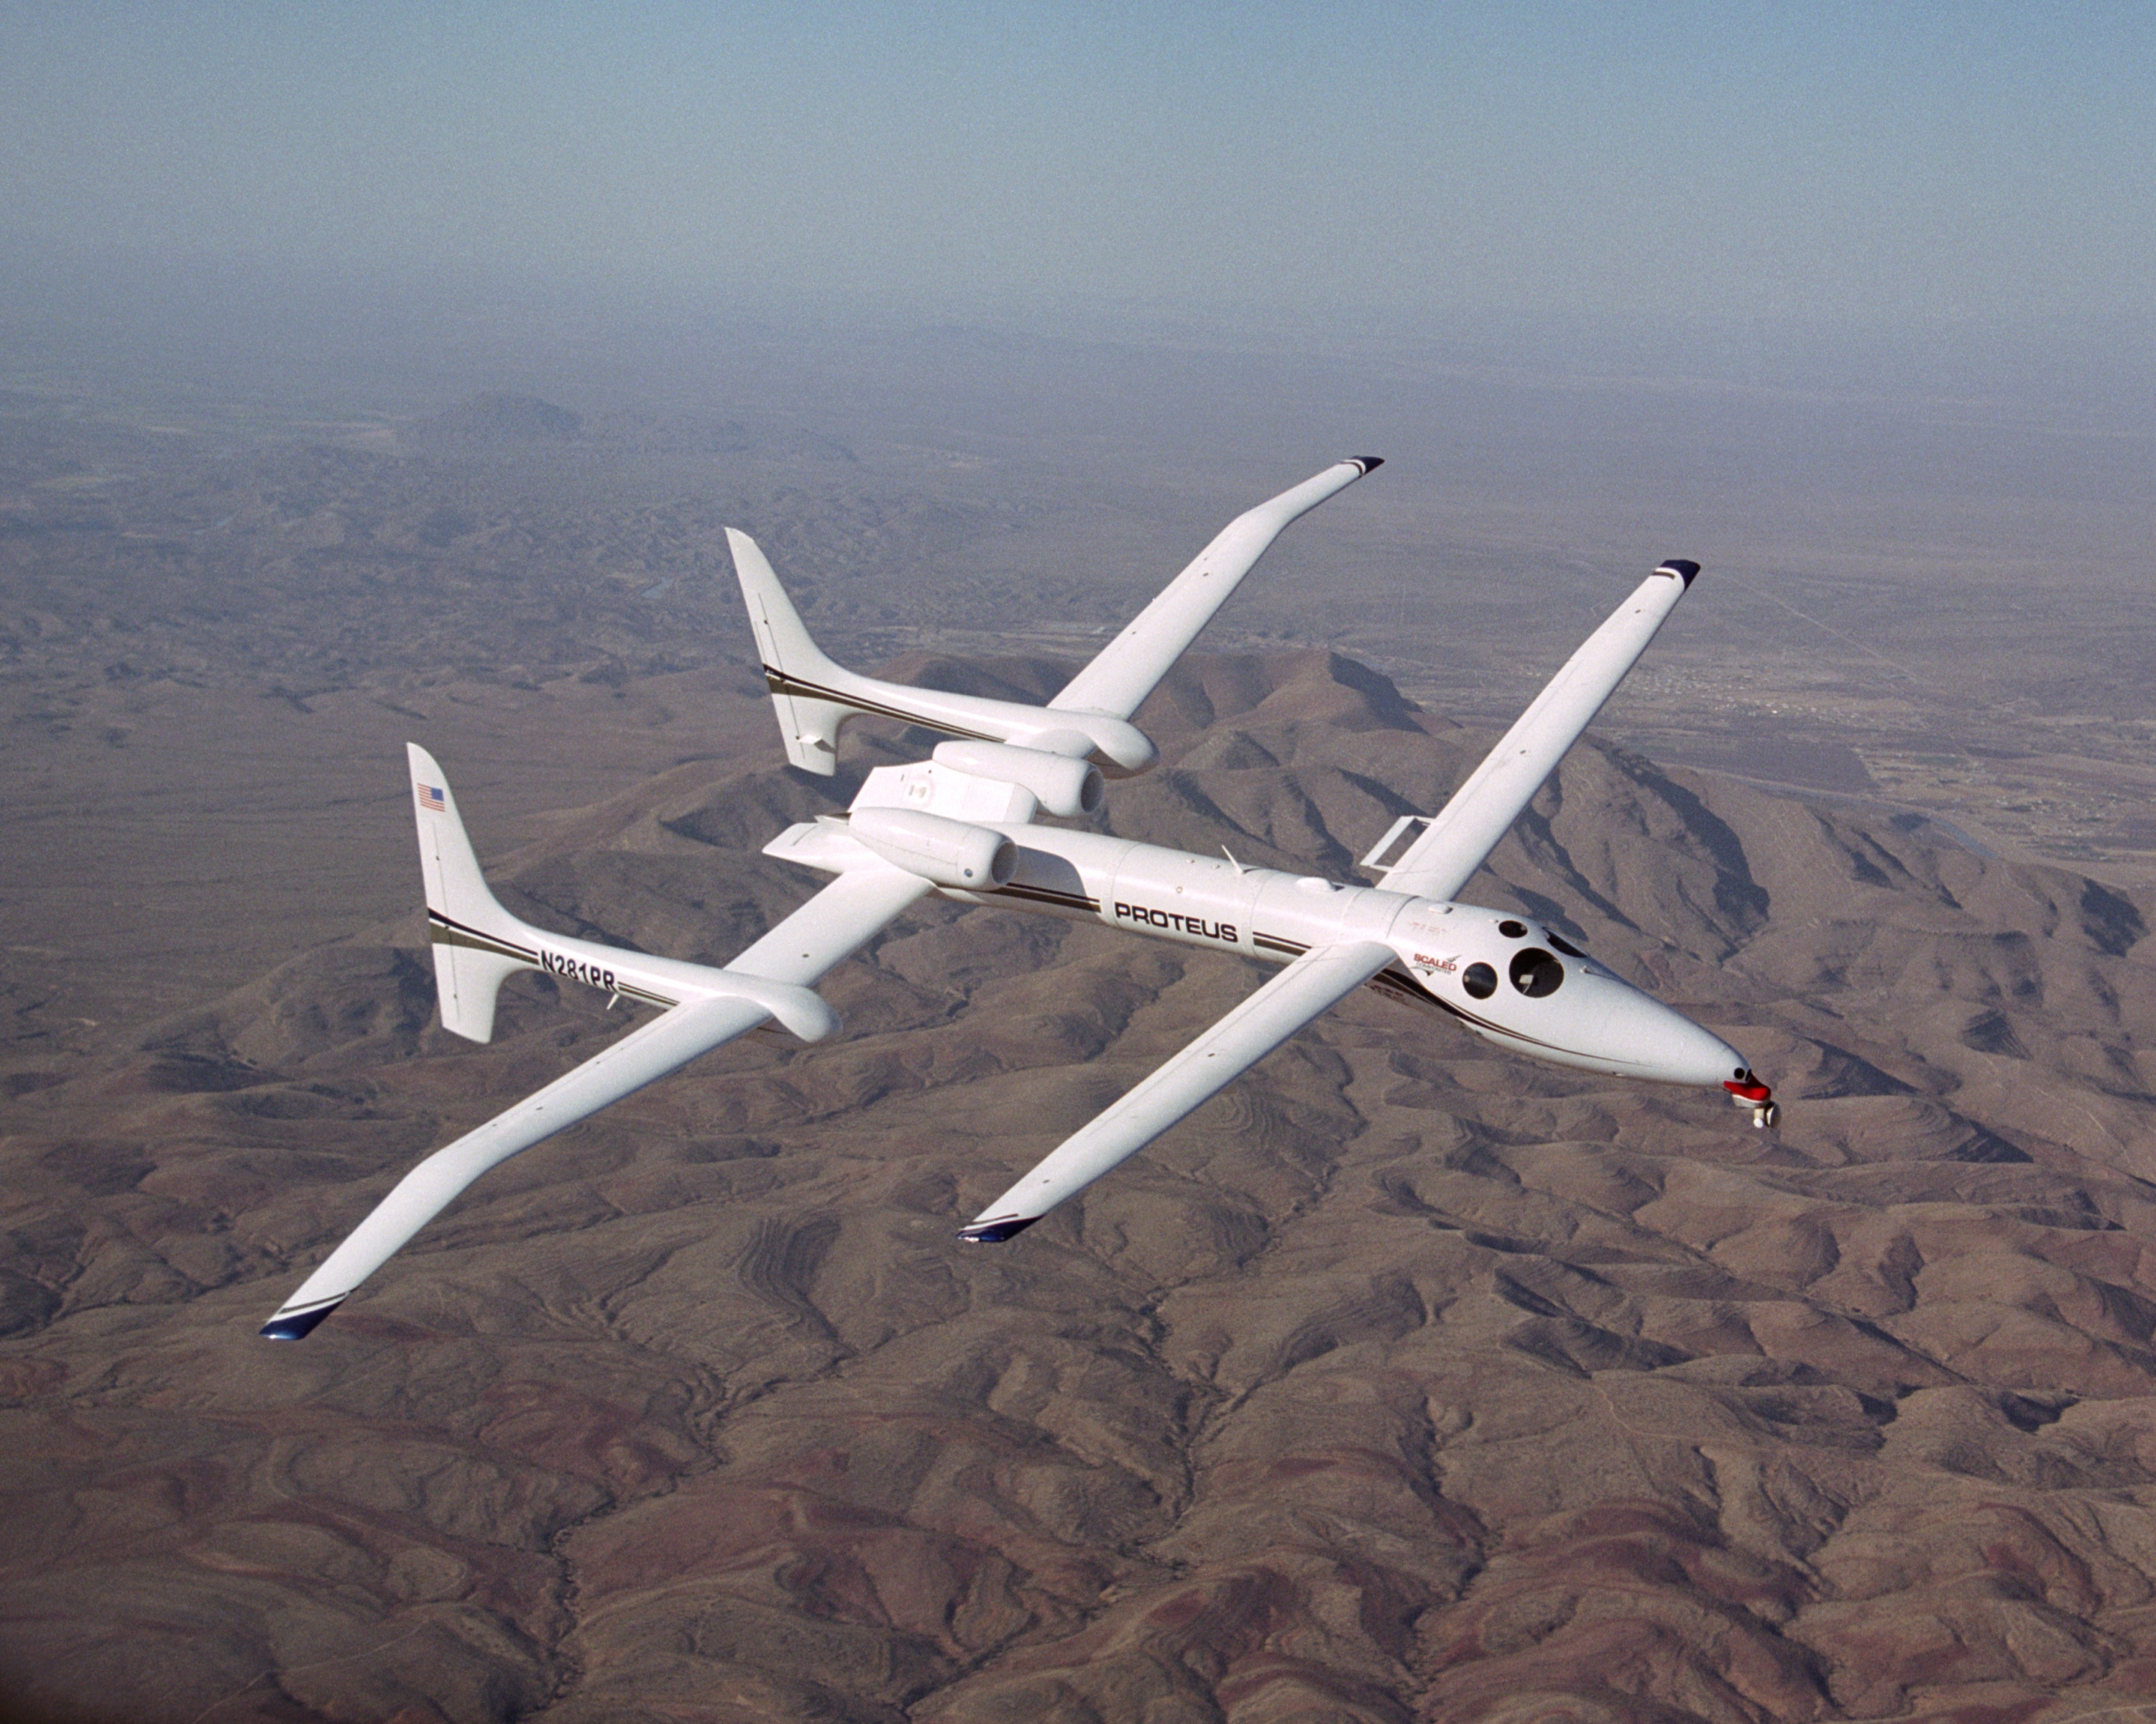 nasa flight of the future - photo #35